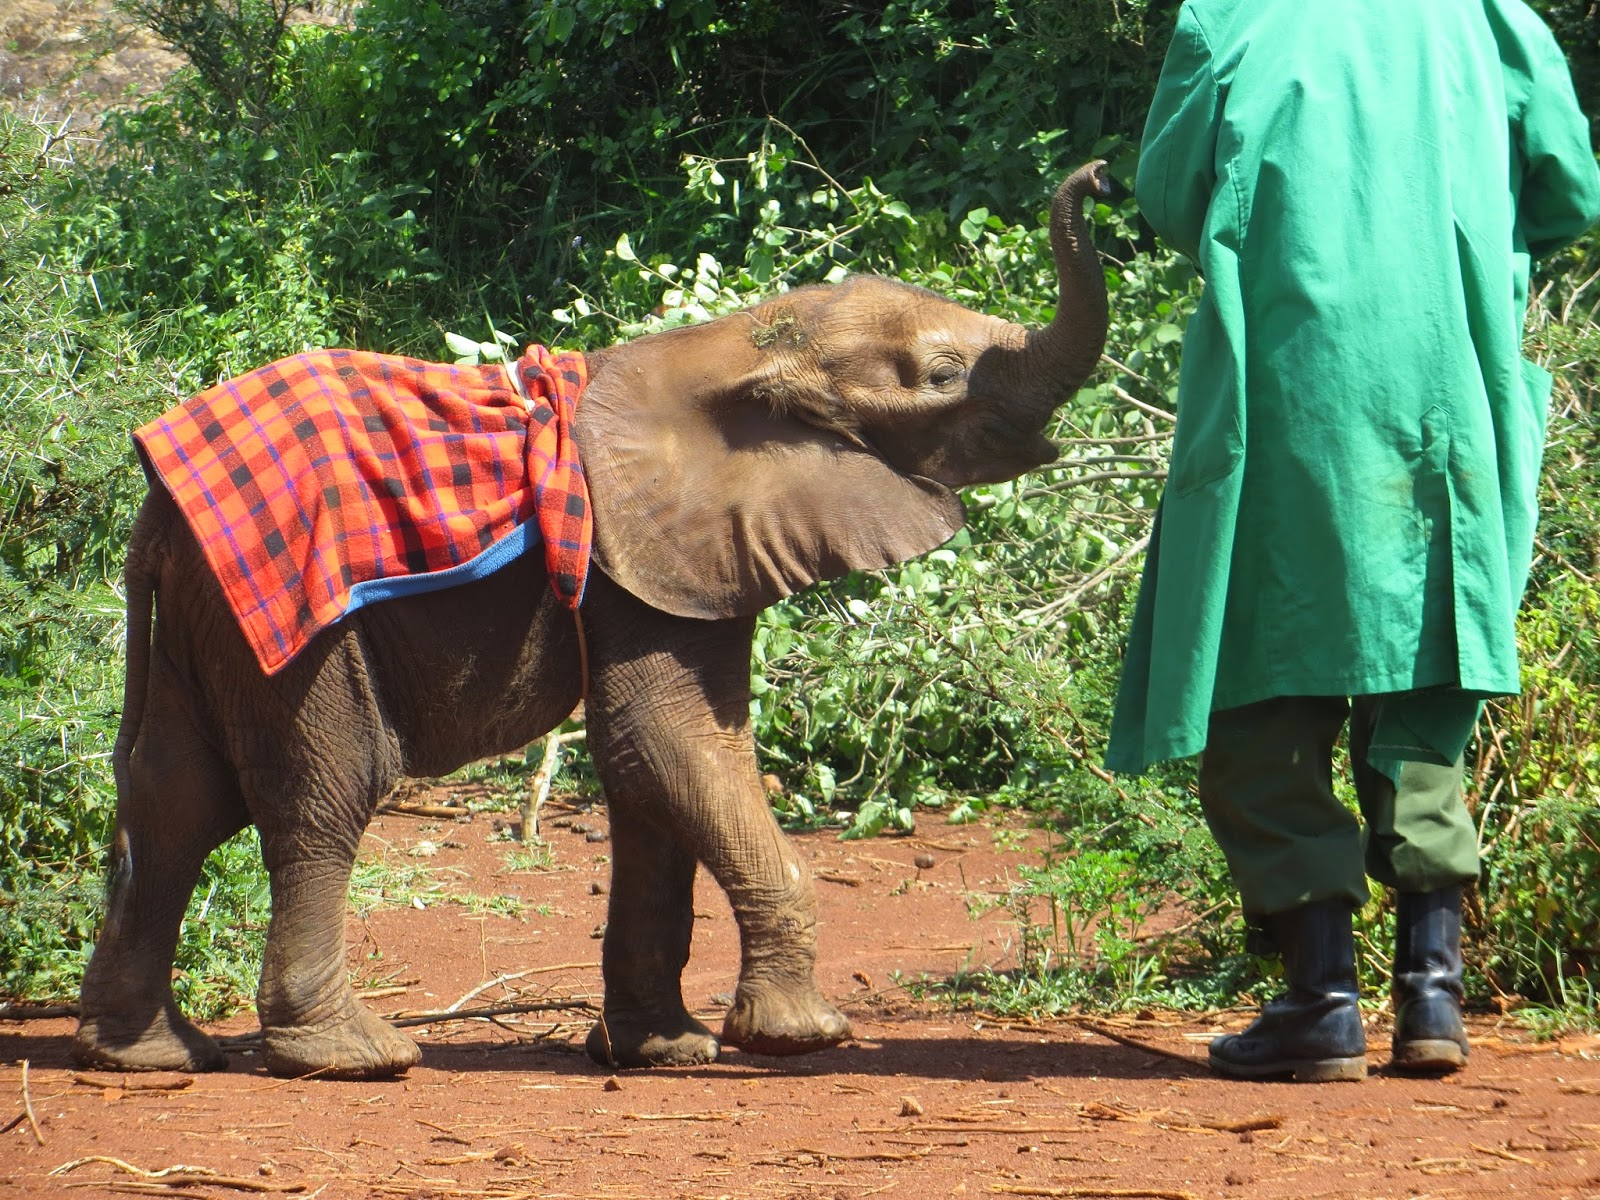 Baby Elephant with Blanket at David Sheldrick Wildlife Trust  - Hello, Handbag